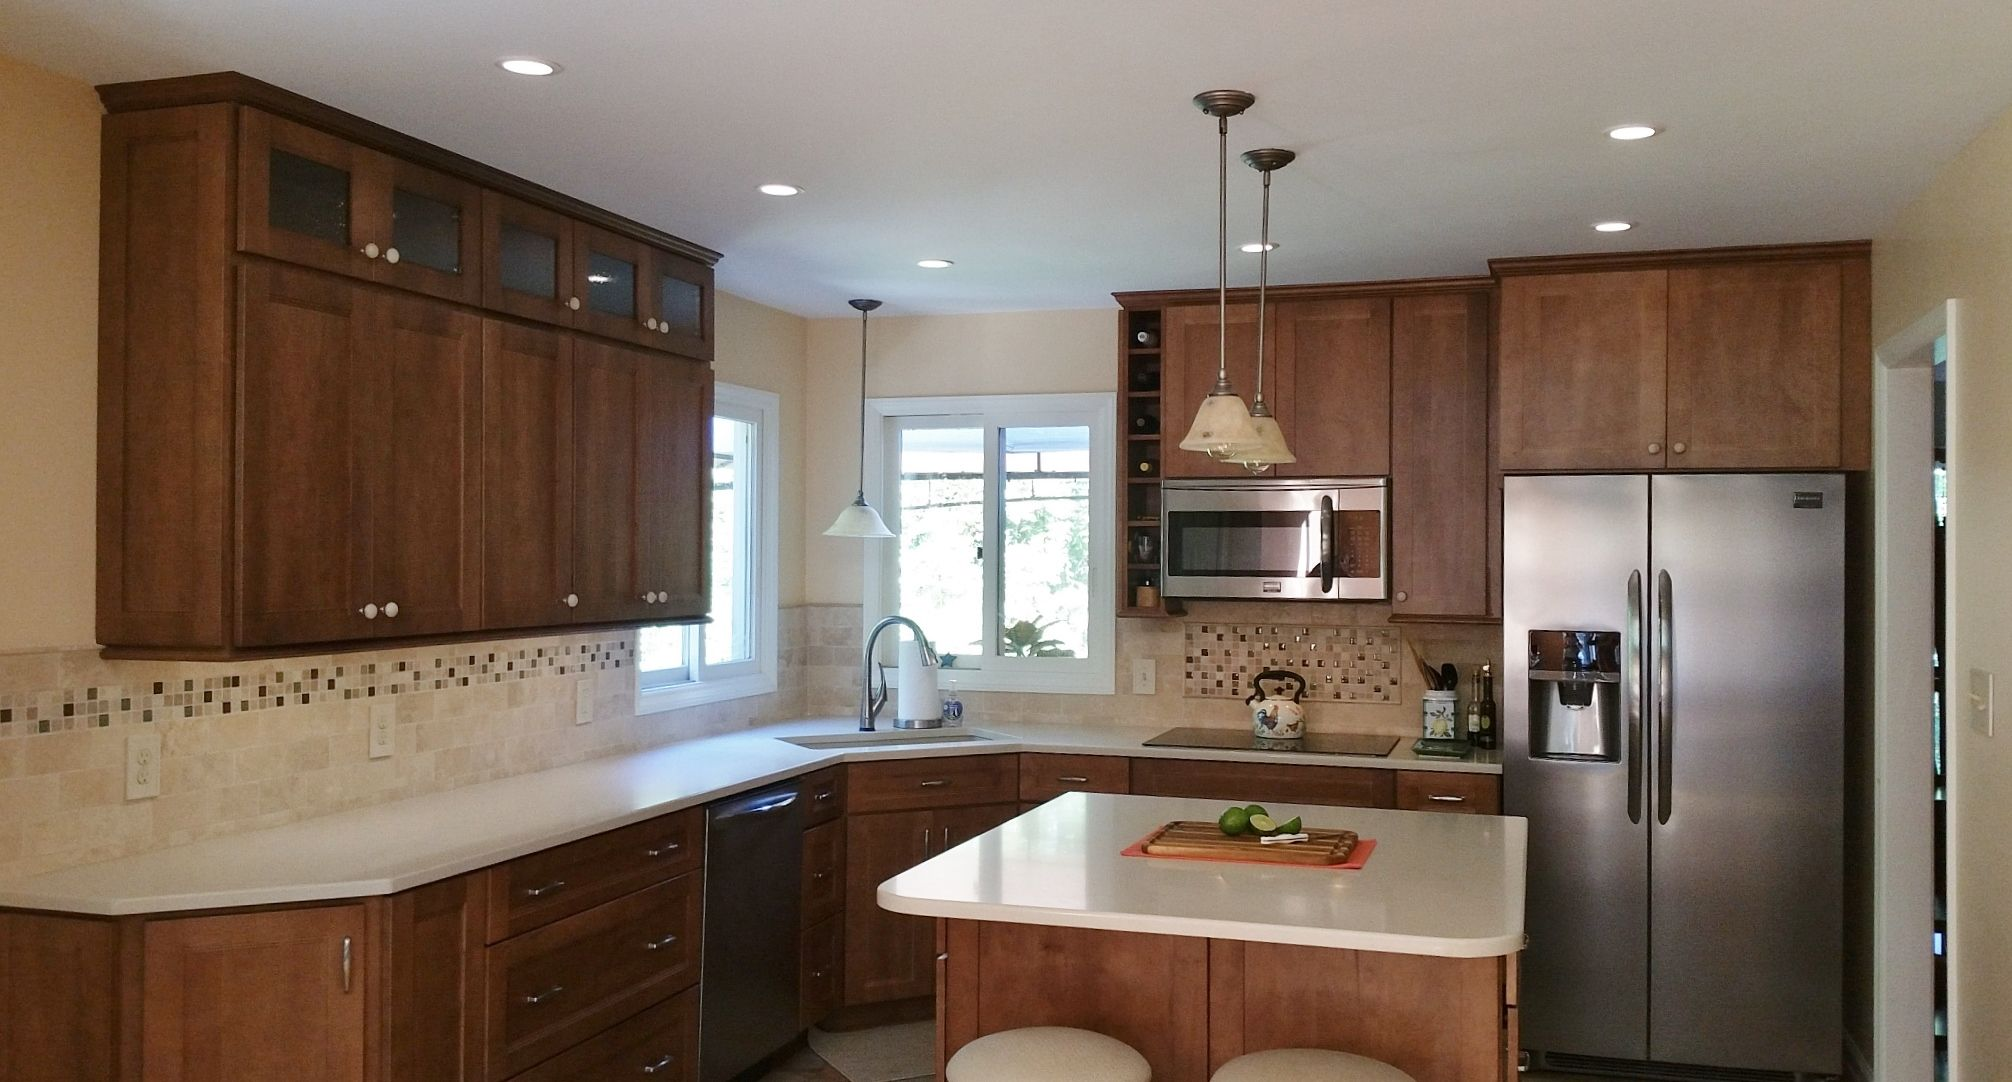 This Small Kitchen Is Packed With Features To Make It More Functional Island With Oven Customized Drawers And Separat Kitchen Design Kitchen Remodel Kitchen